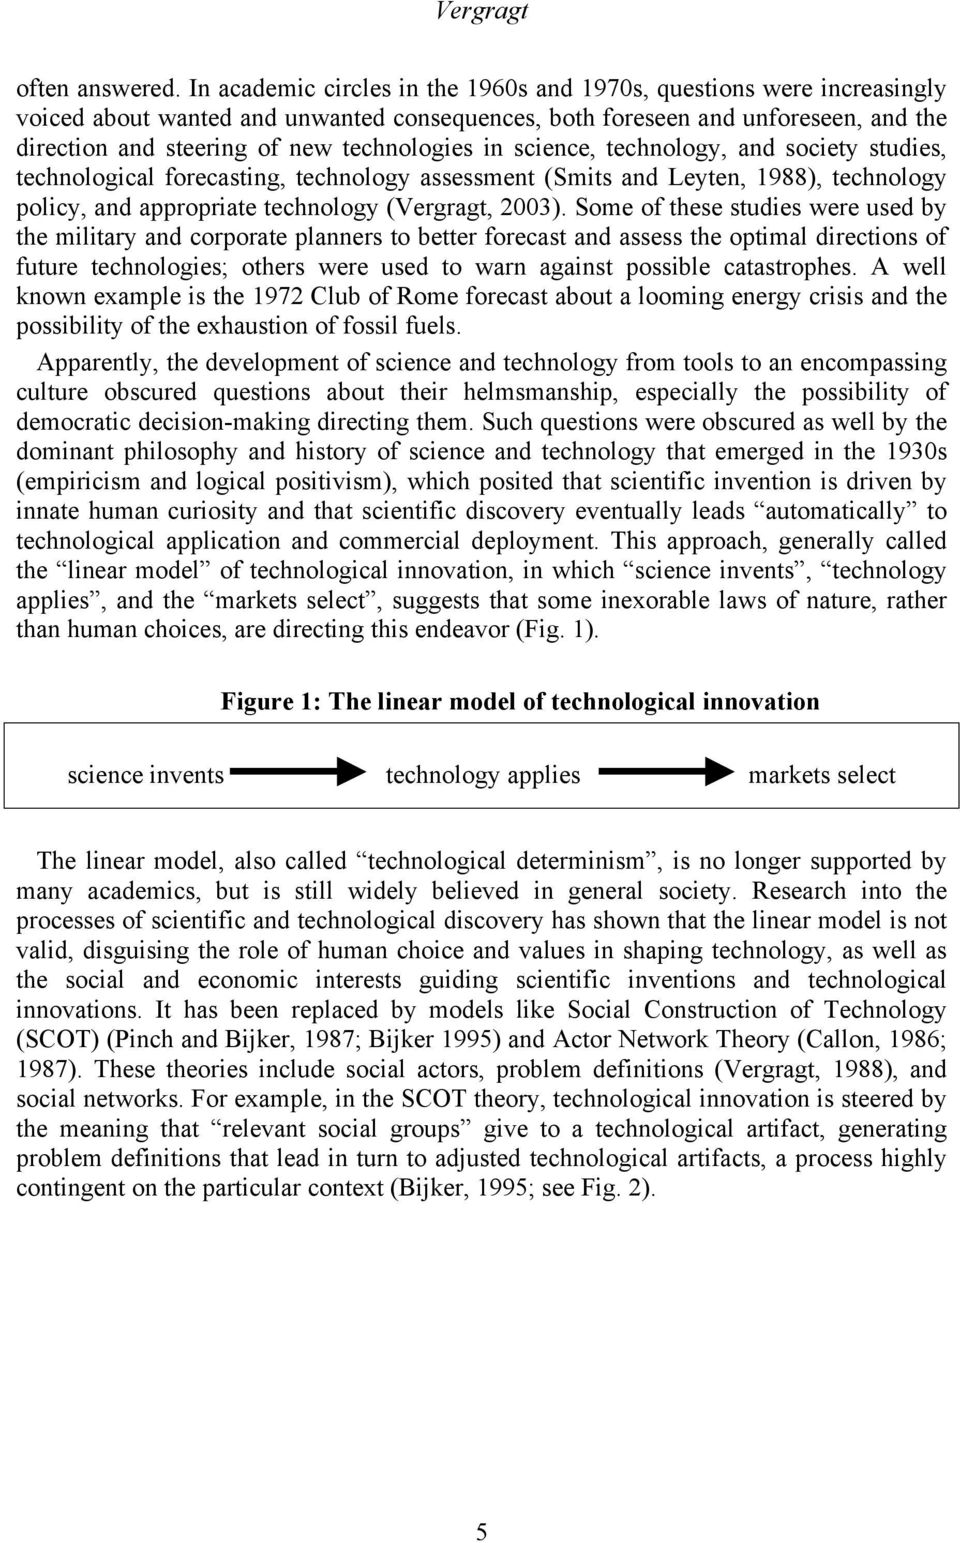 in science, technology, and society studies, technological forecasting, technology assessment (Smits and Leyten, 1988), technology policy, and appropriate technology (Vergragt, 2003).